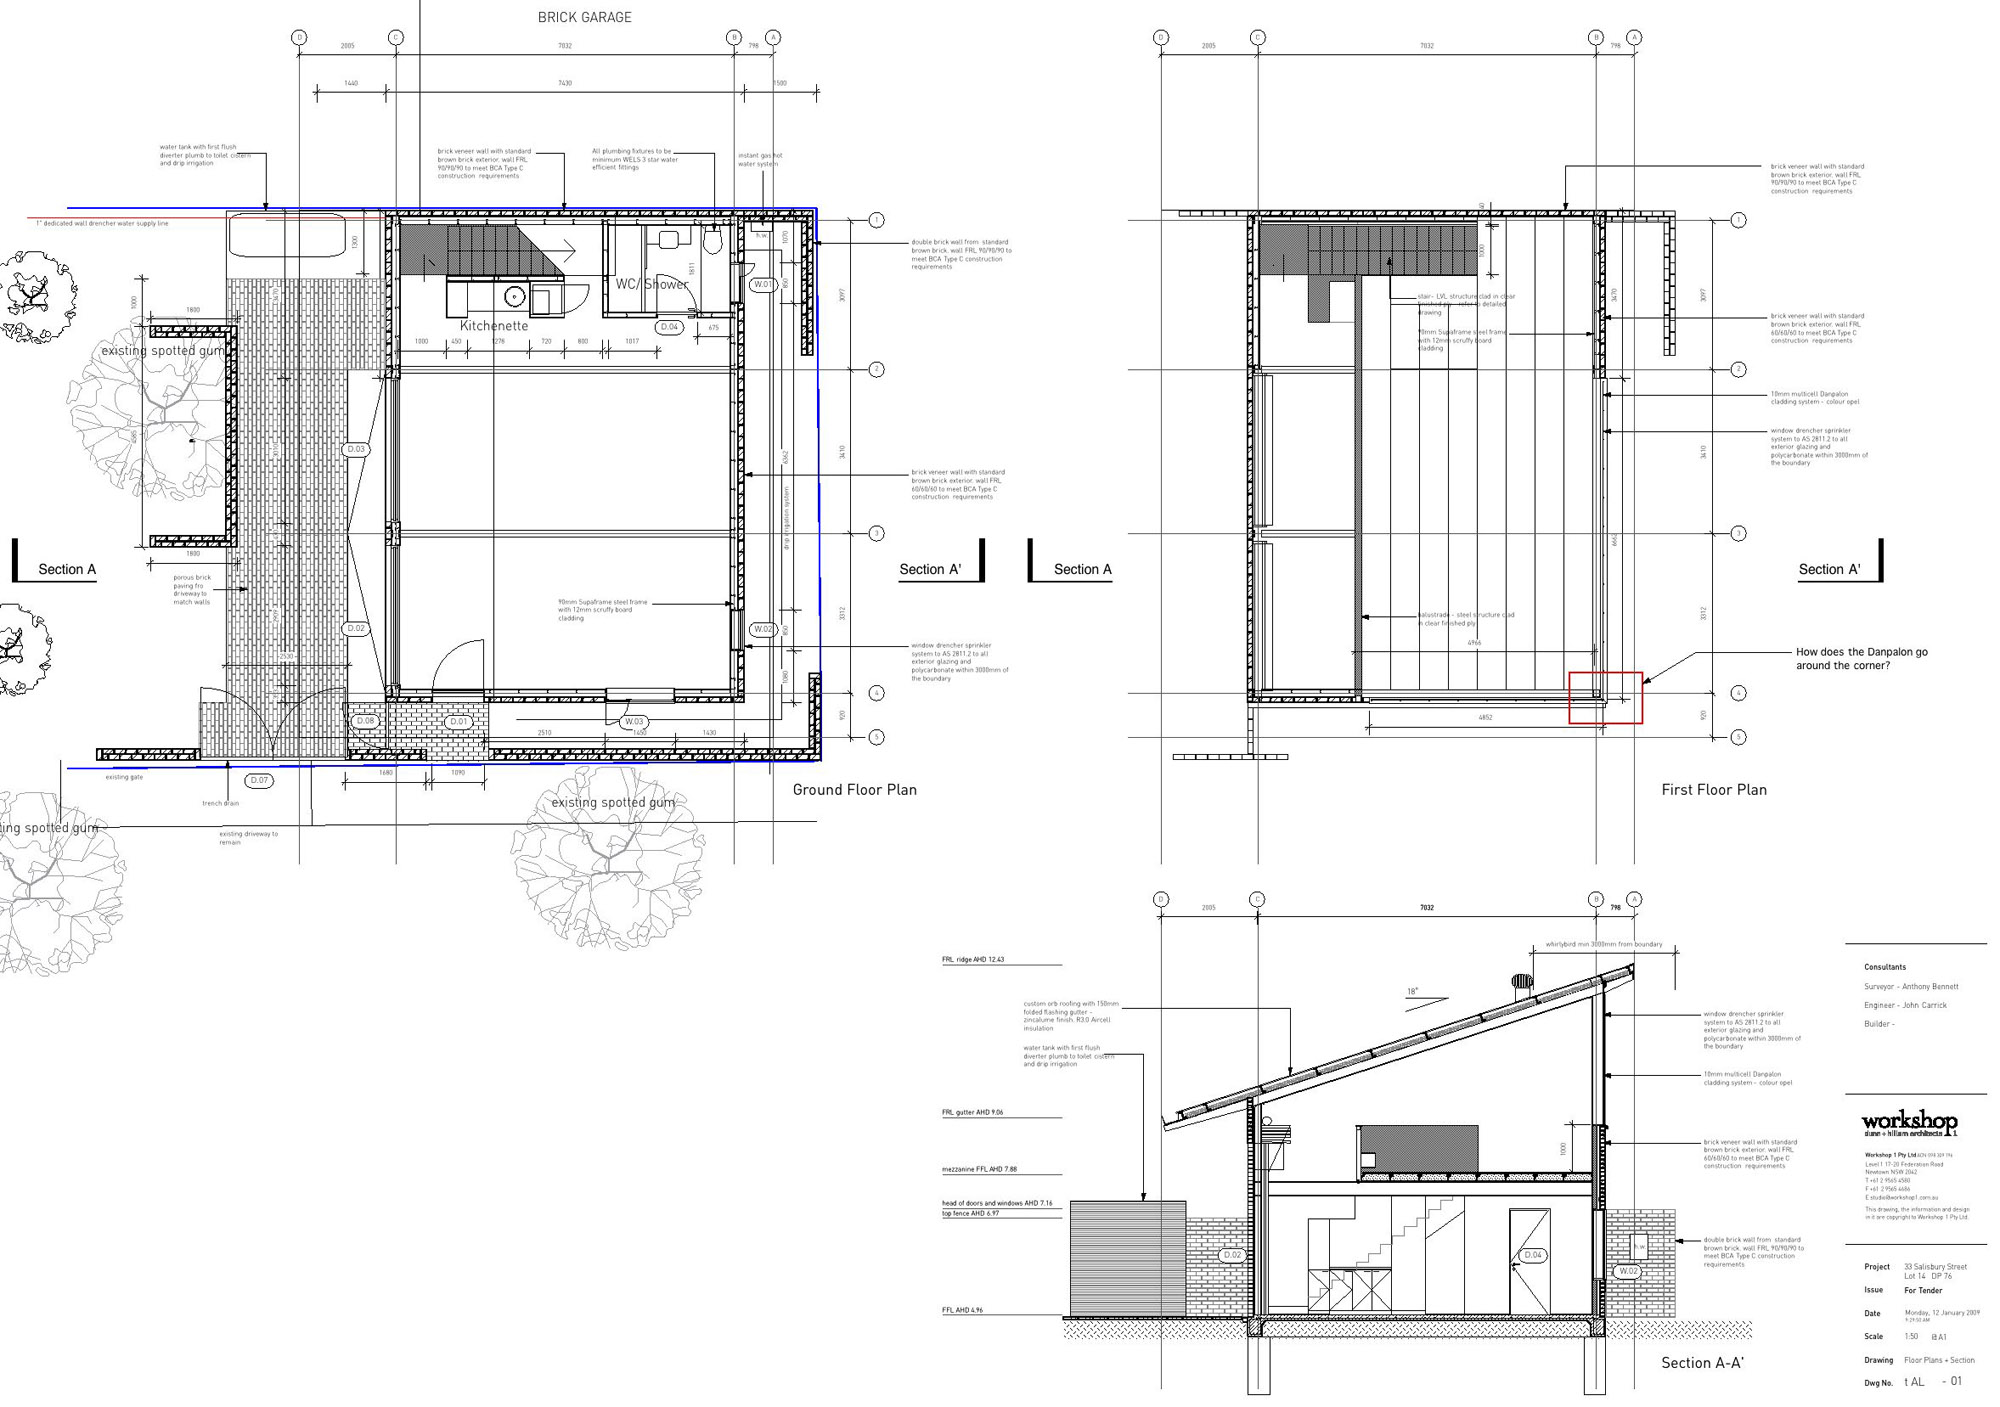 Outstanding House Section Plan 2000 x 1407 · 355 kB · jpeg